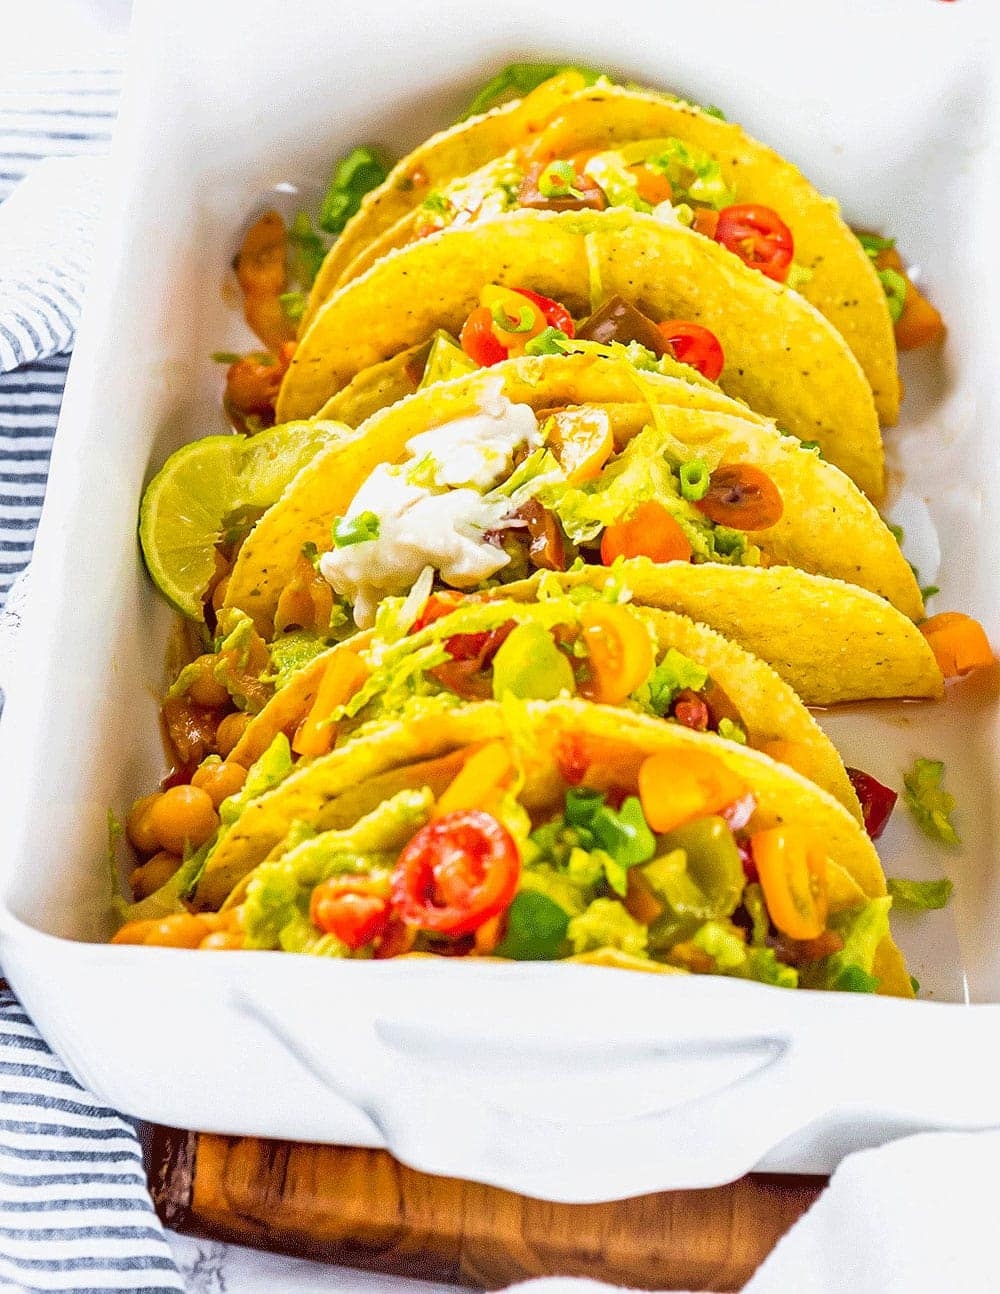 Easy Chickpea Tacos with chickpea stew topped with guacamole, tomatoes, sour cream lettuce in a white casserole dish